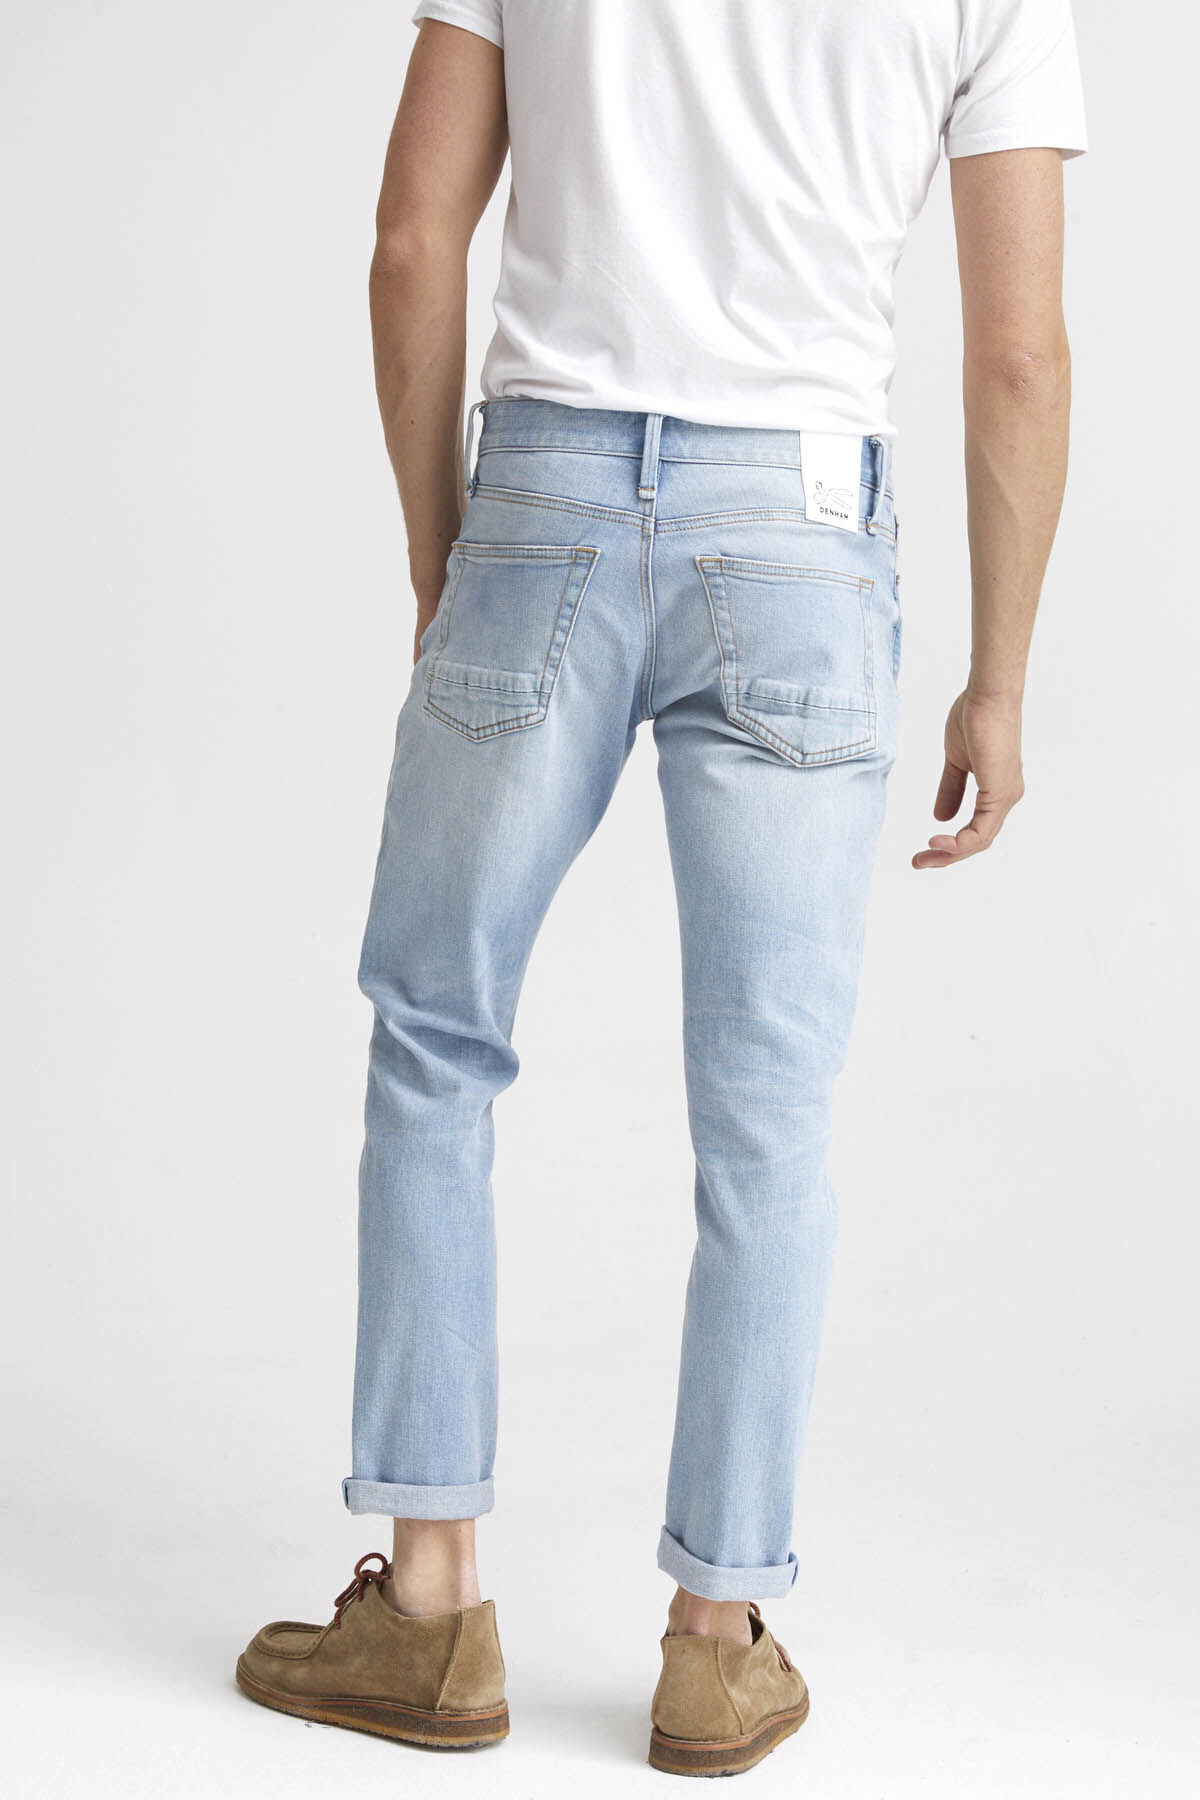 RAZOR Stonewashed Denim - Slim Fit